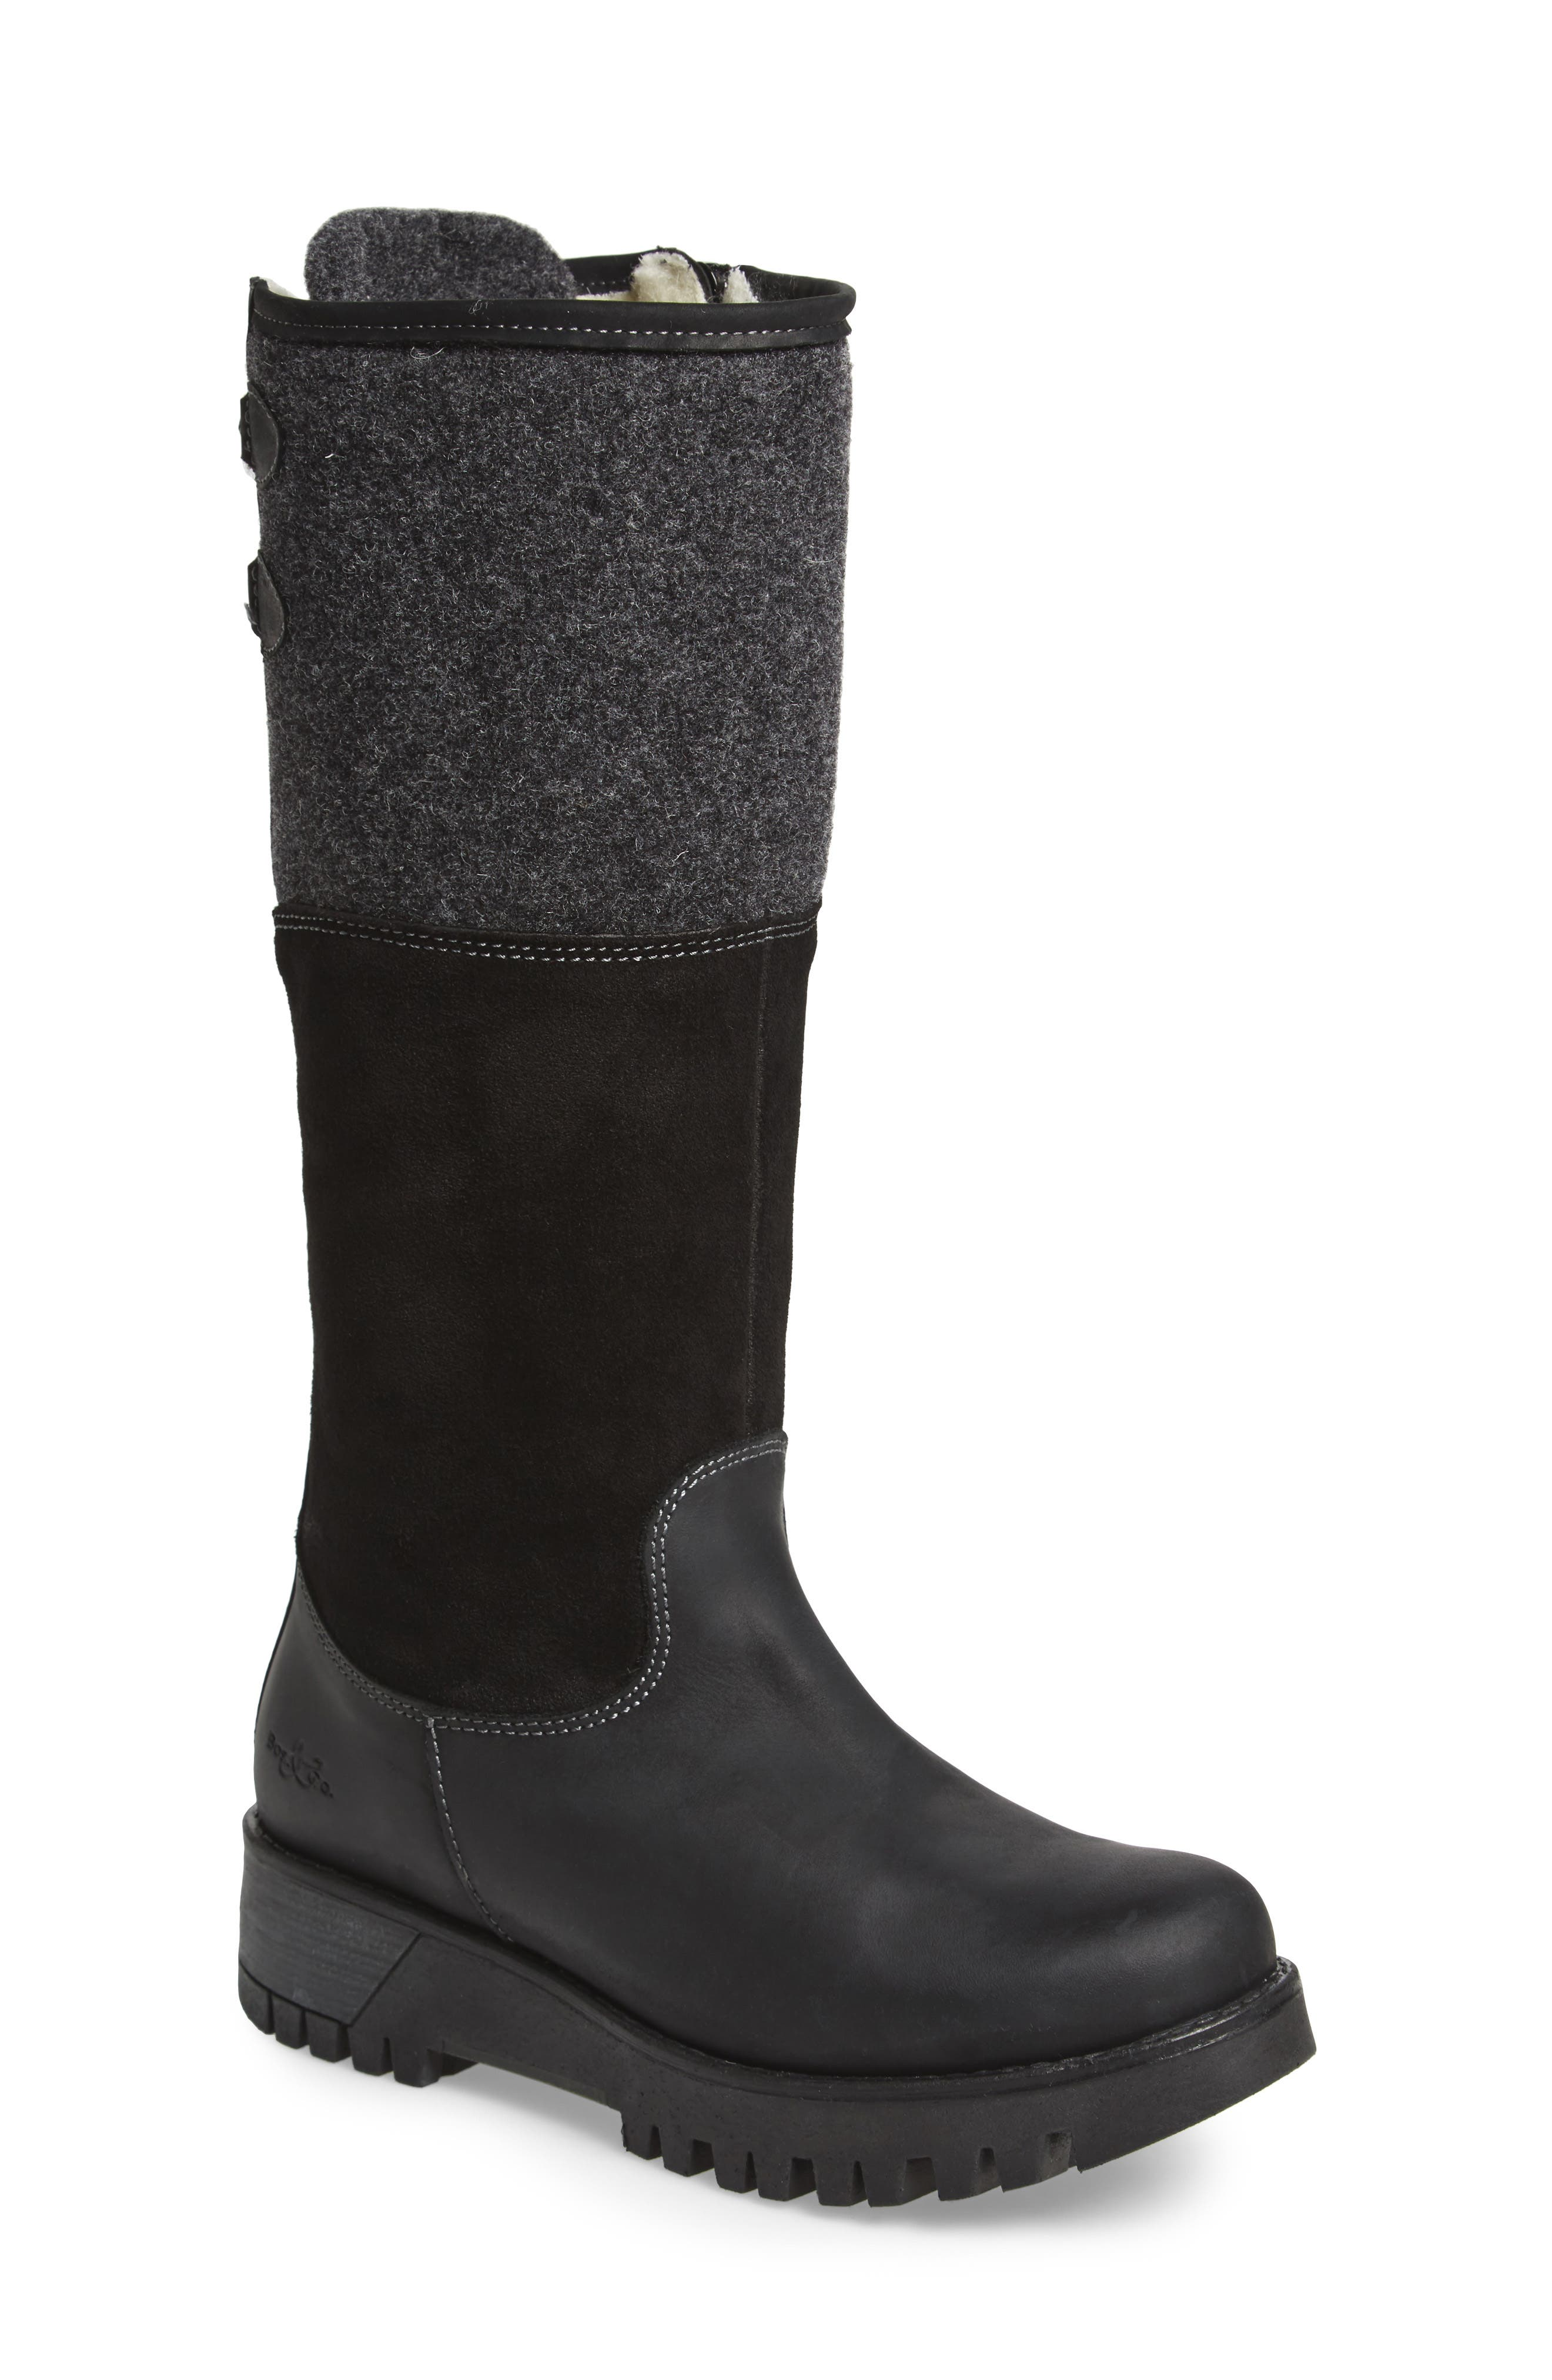 Main Image - Bos. & Co. 'Ginger' Waterproof Mid Calf Platform Boot (Women)